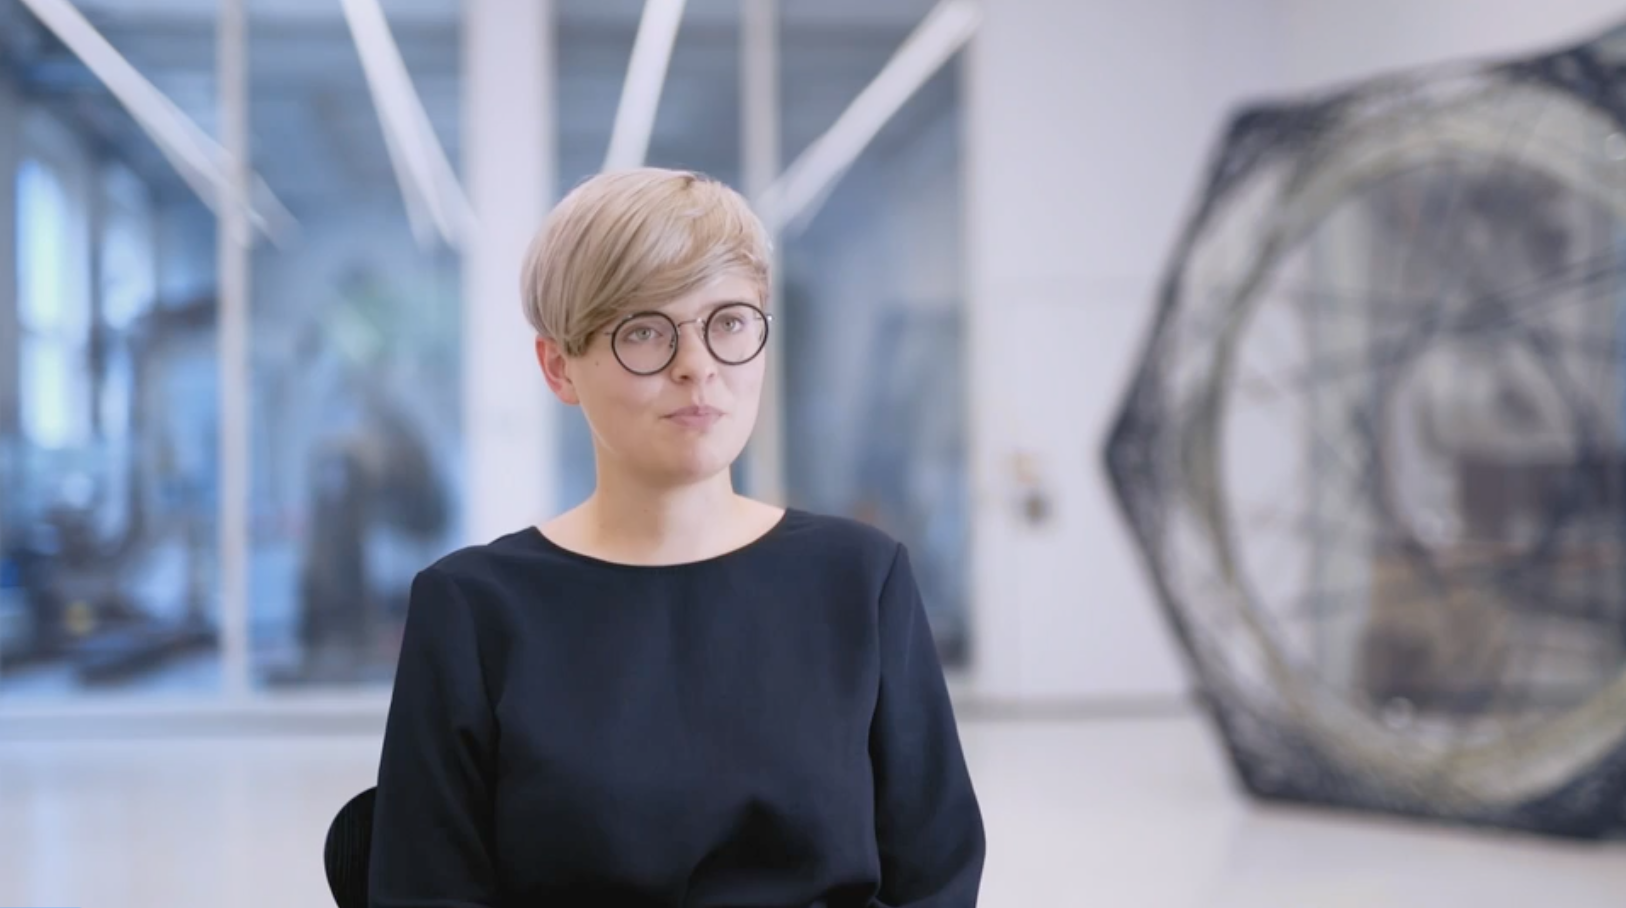 Maria Yablonina believes that robots have created groundbreaking possibilities for artists, and her work investigates the curious and the complicated.